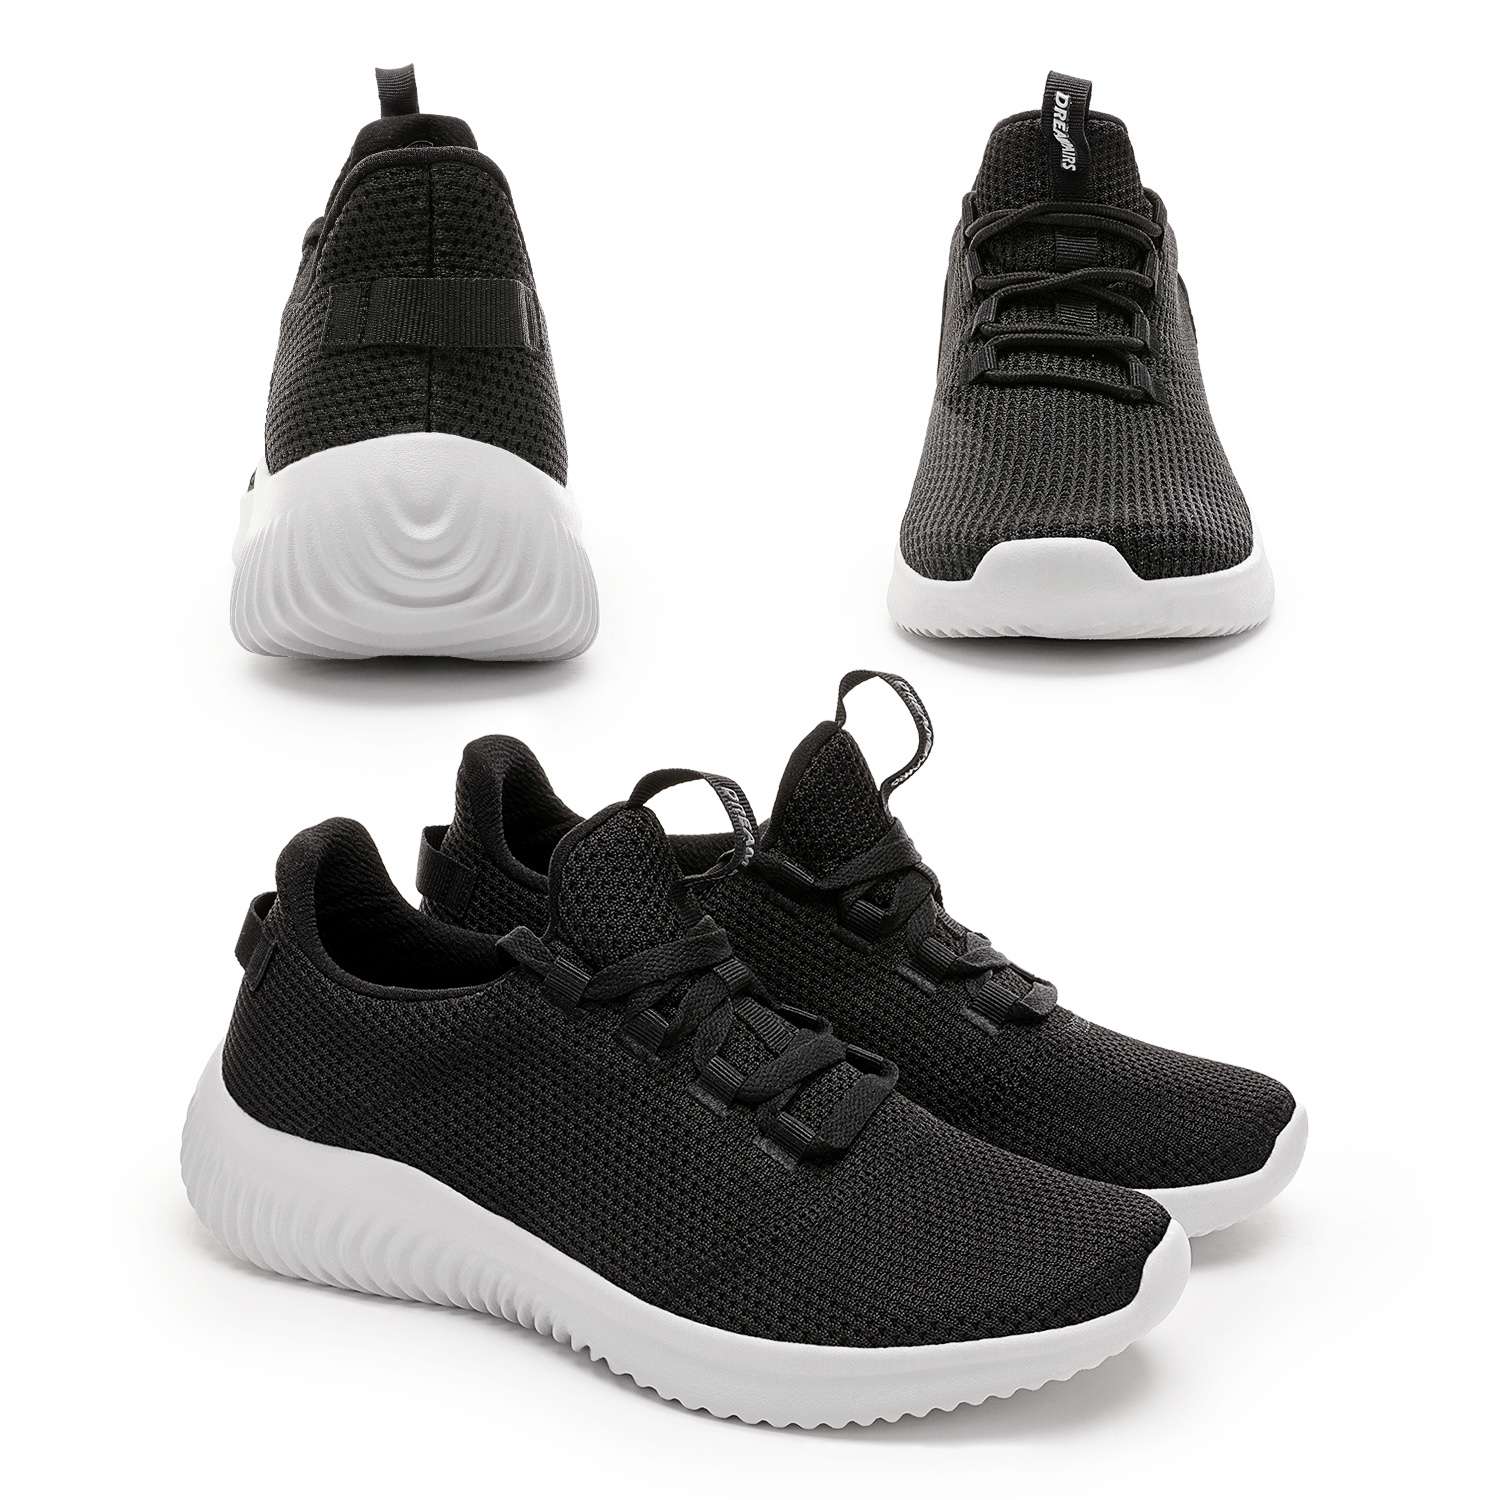 thumbnail 13 - Mens Running Shoes Lightweight Fashion Sneakers Comfort Walking Shoes